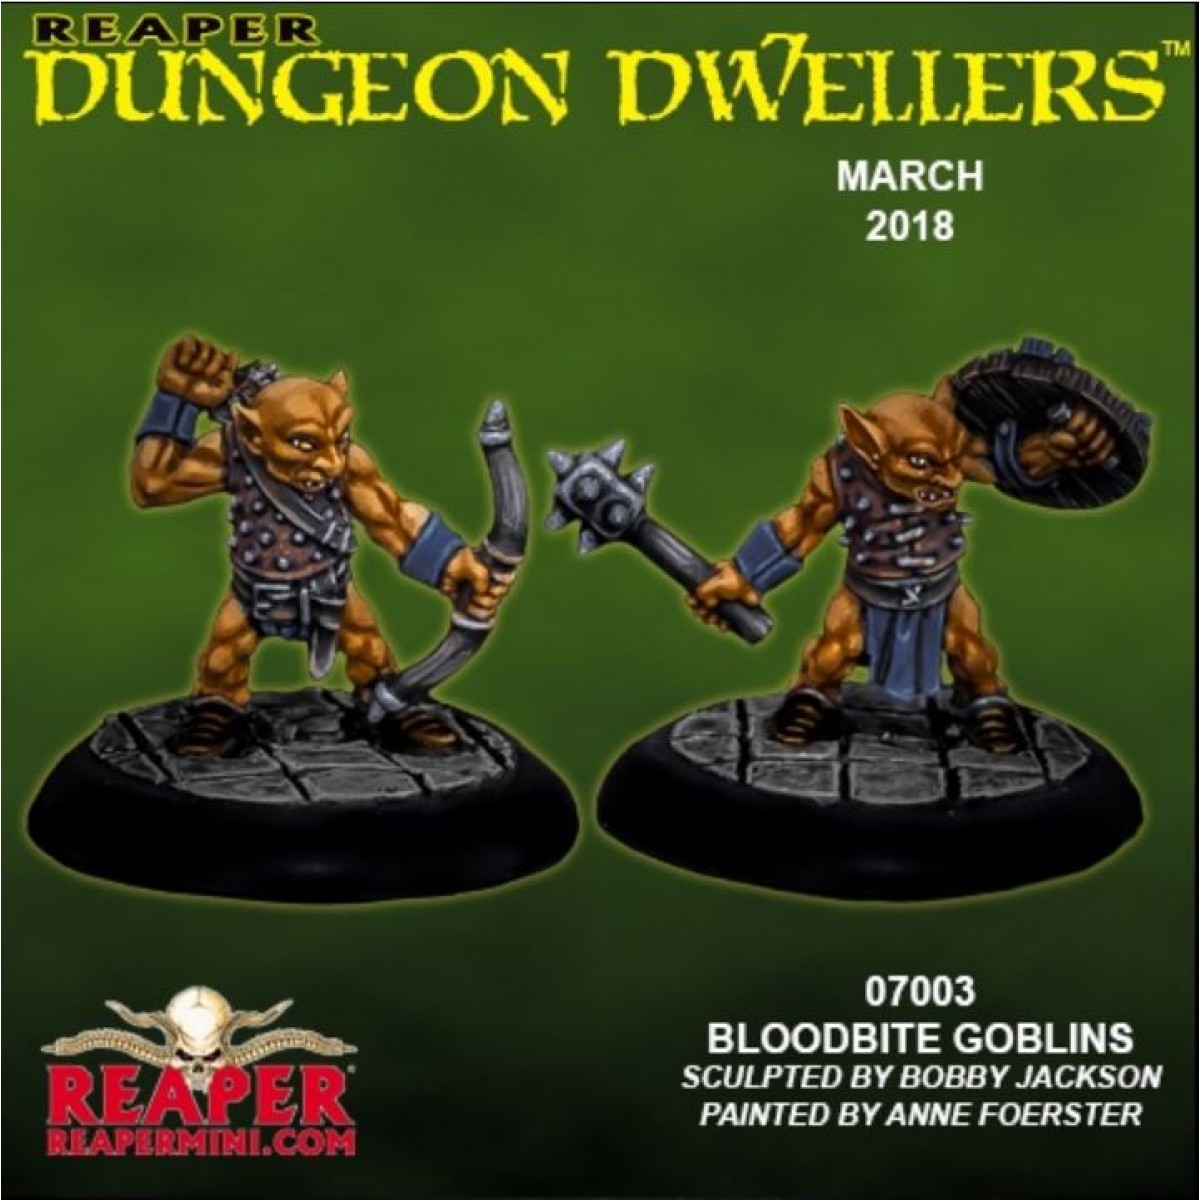 Dungeon Dwellers: Bloodbite Goblins (2)